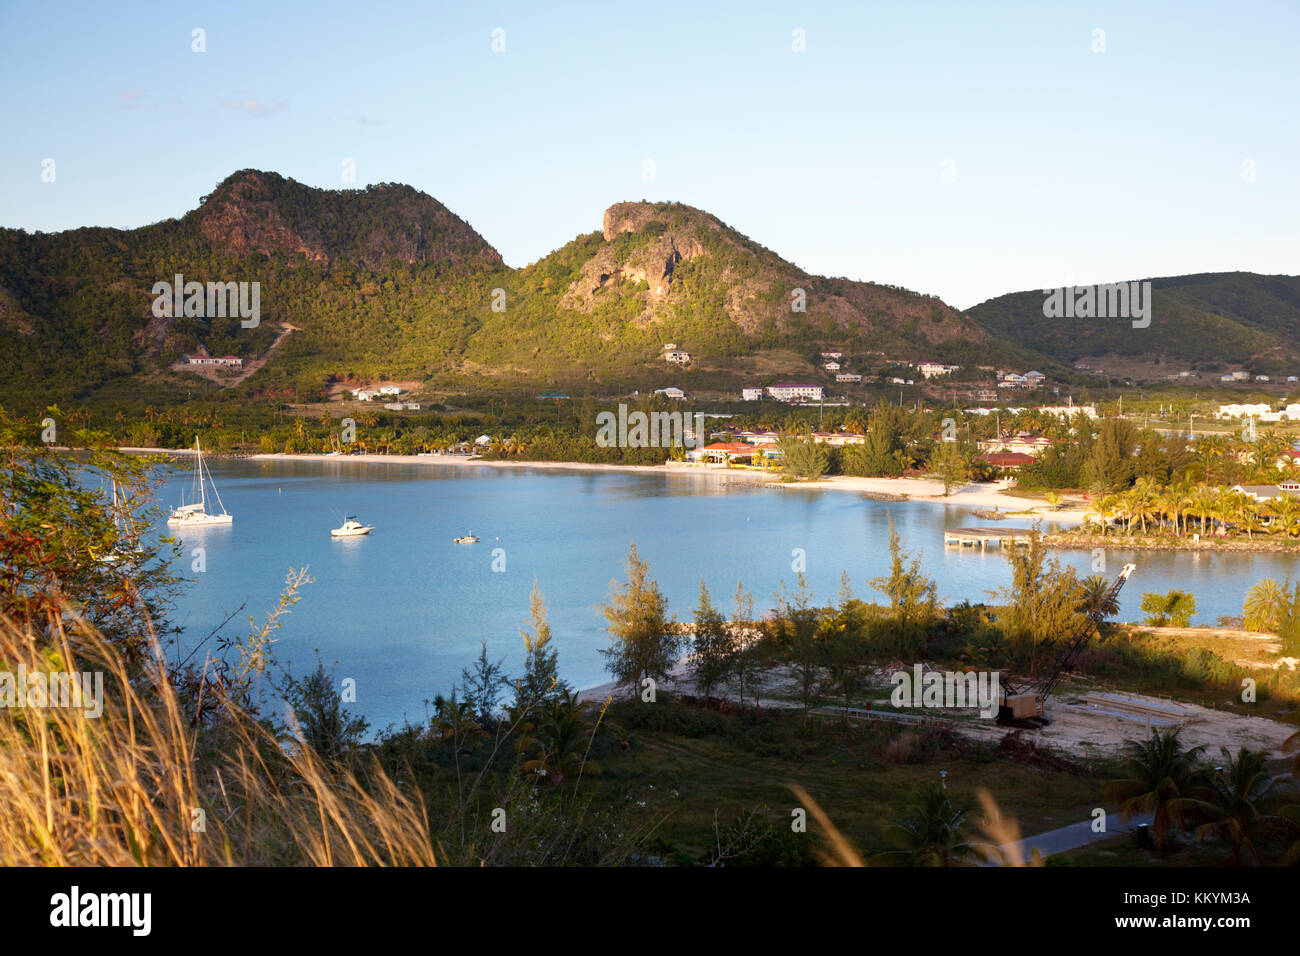 Close to Jolly Harbor in Antigua. Sailboats in a bay in evening light. - Stock Image